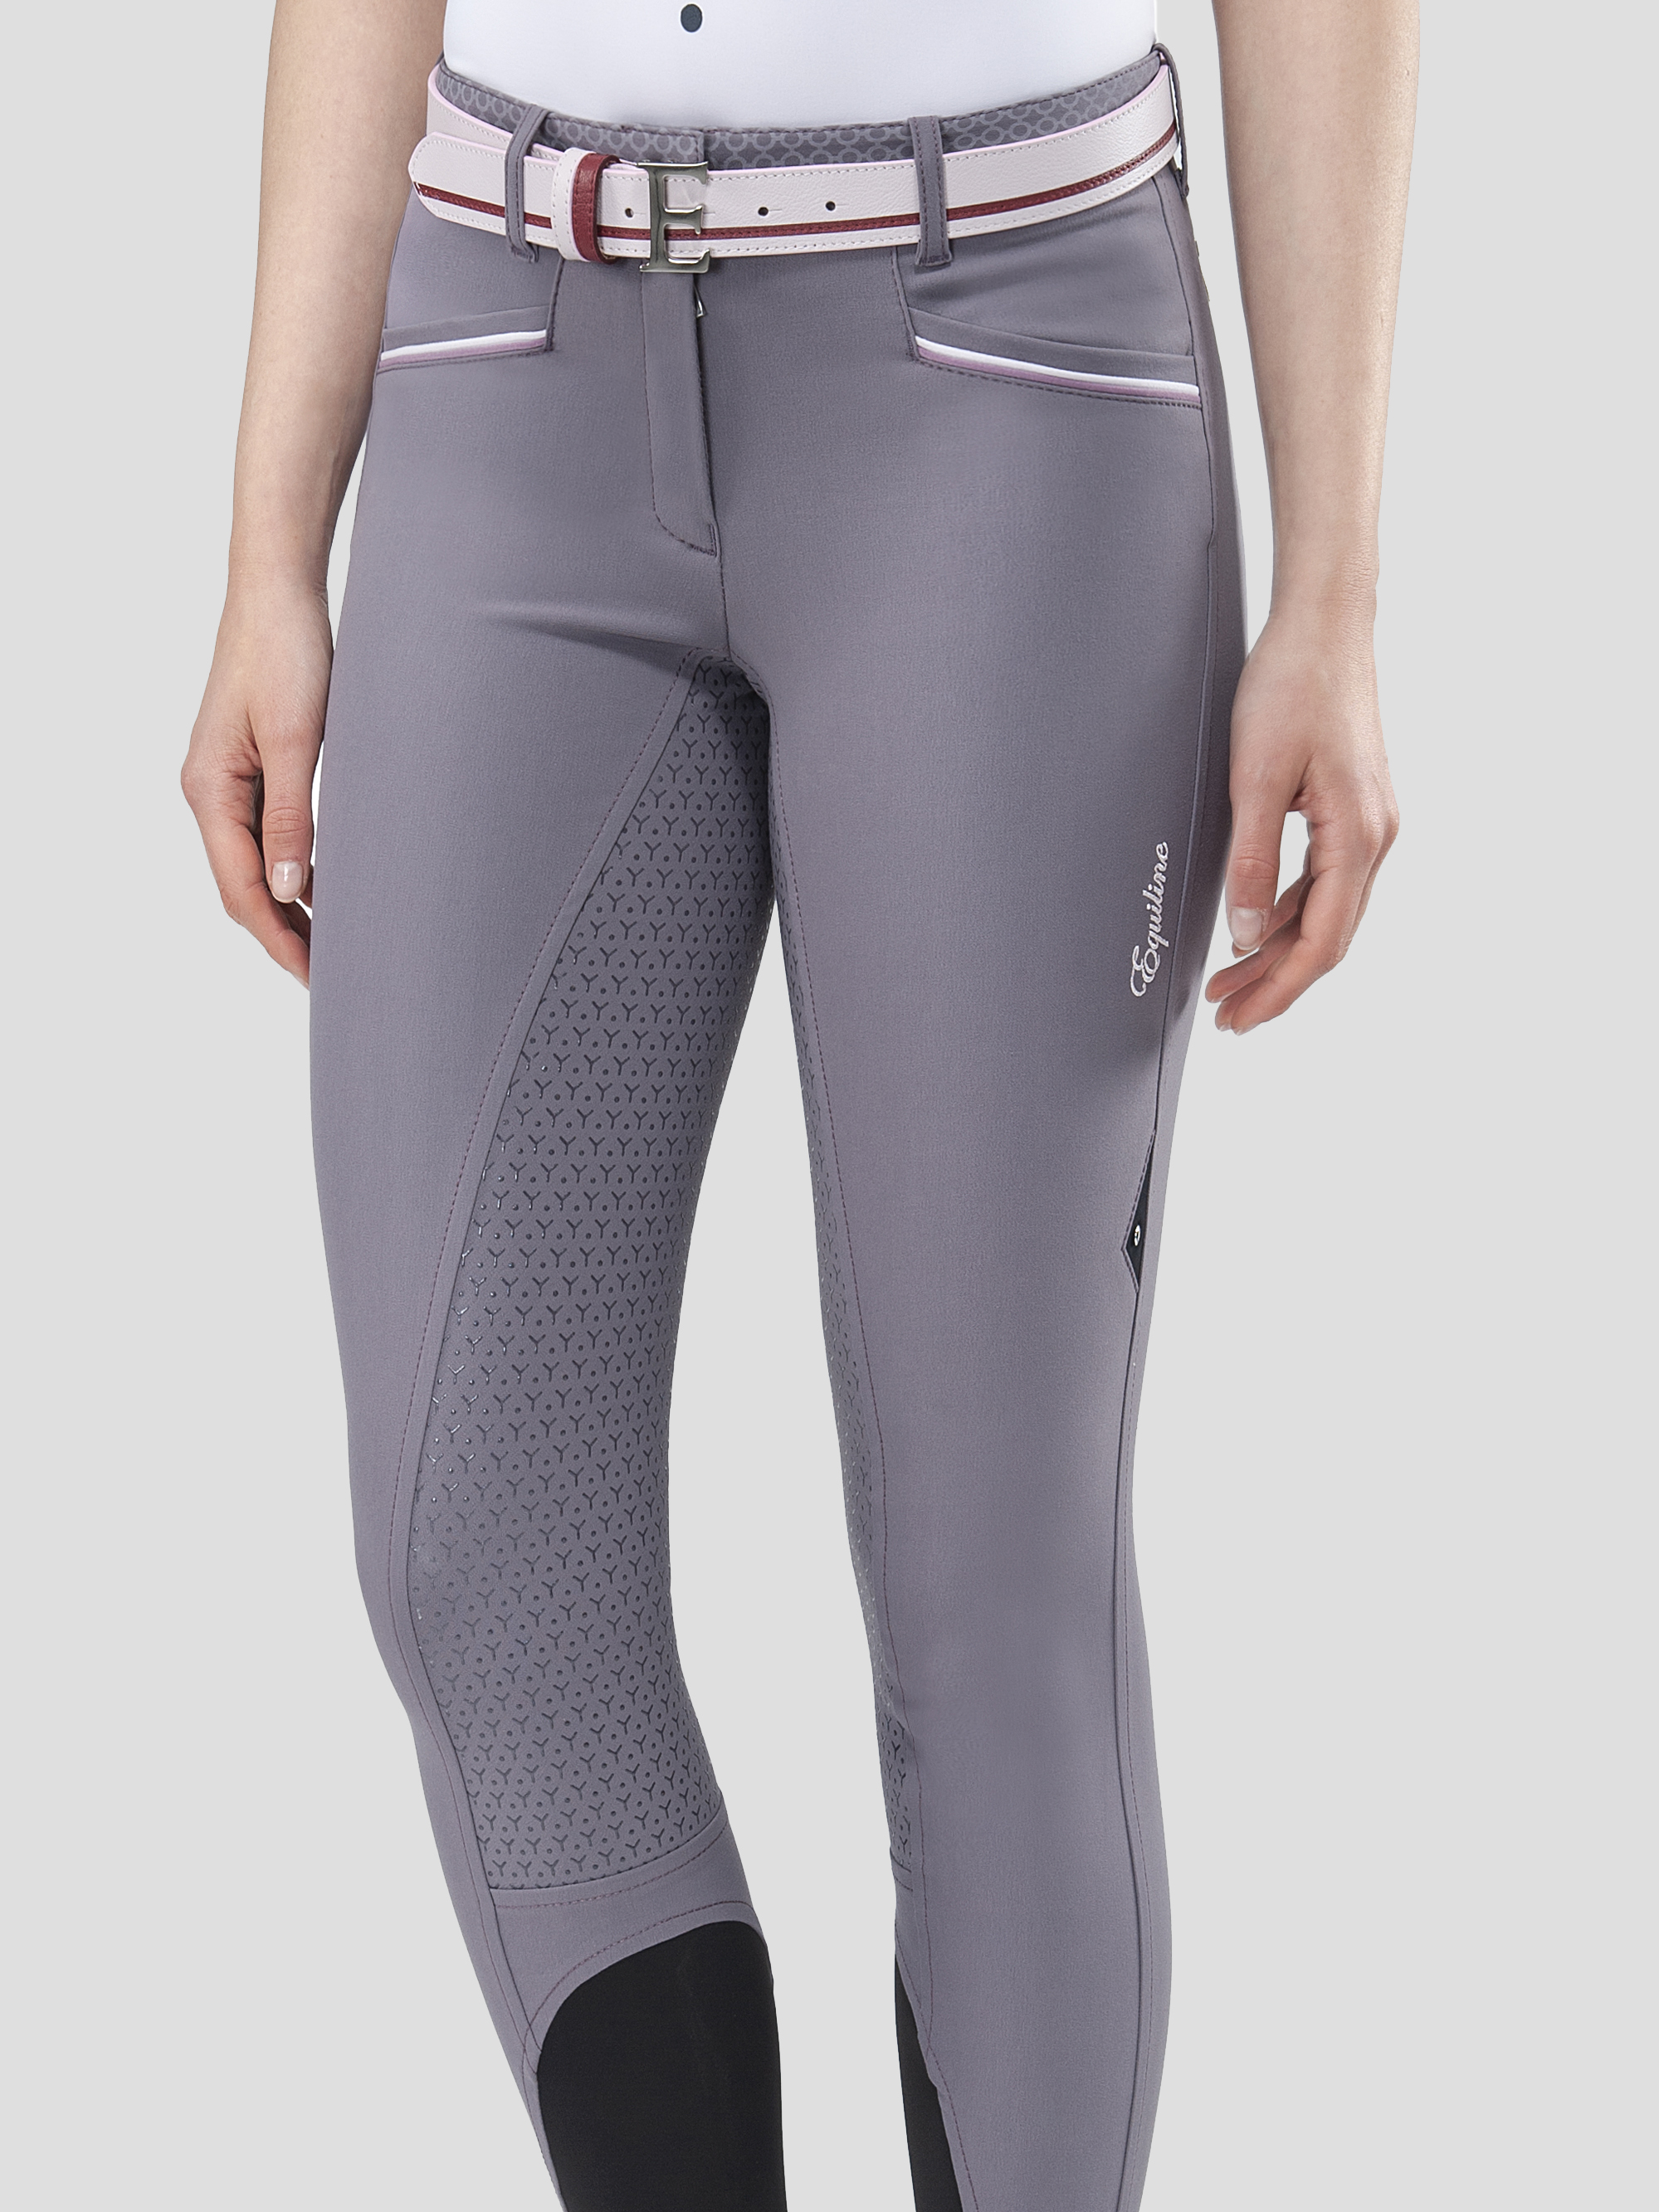 ESHA WOMEN'S FULL GRIP BREECHES WITH DOUBLE PIPING 2